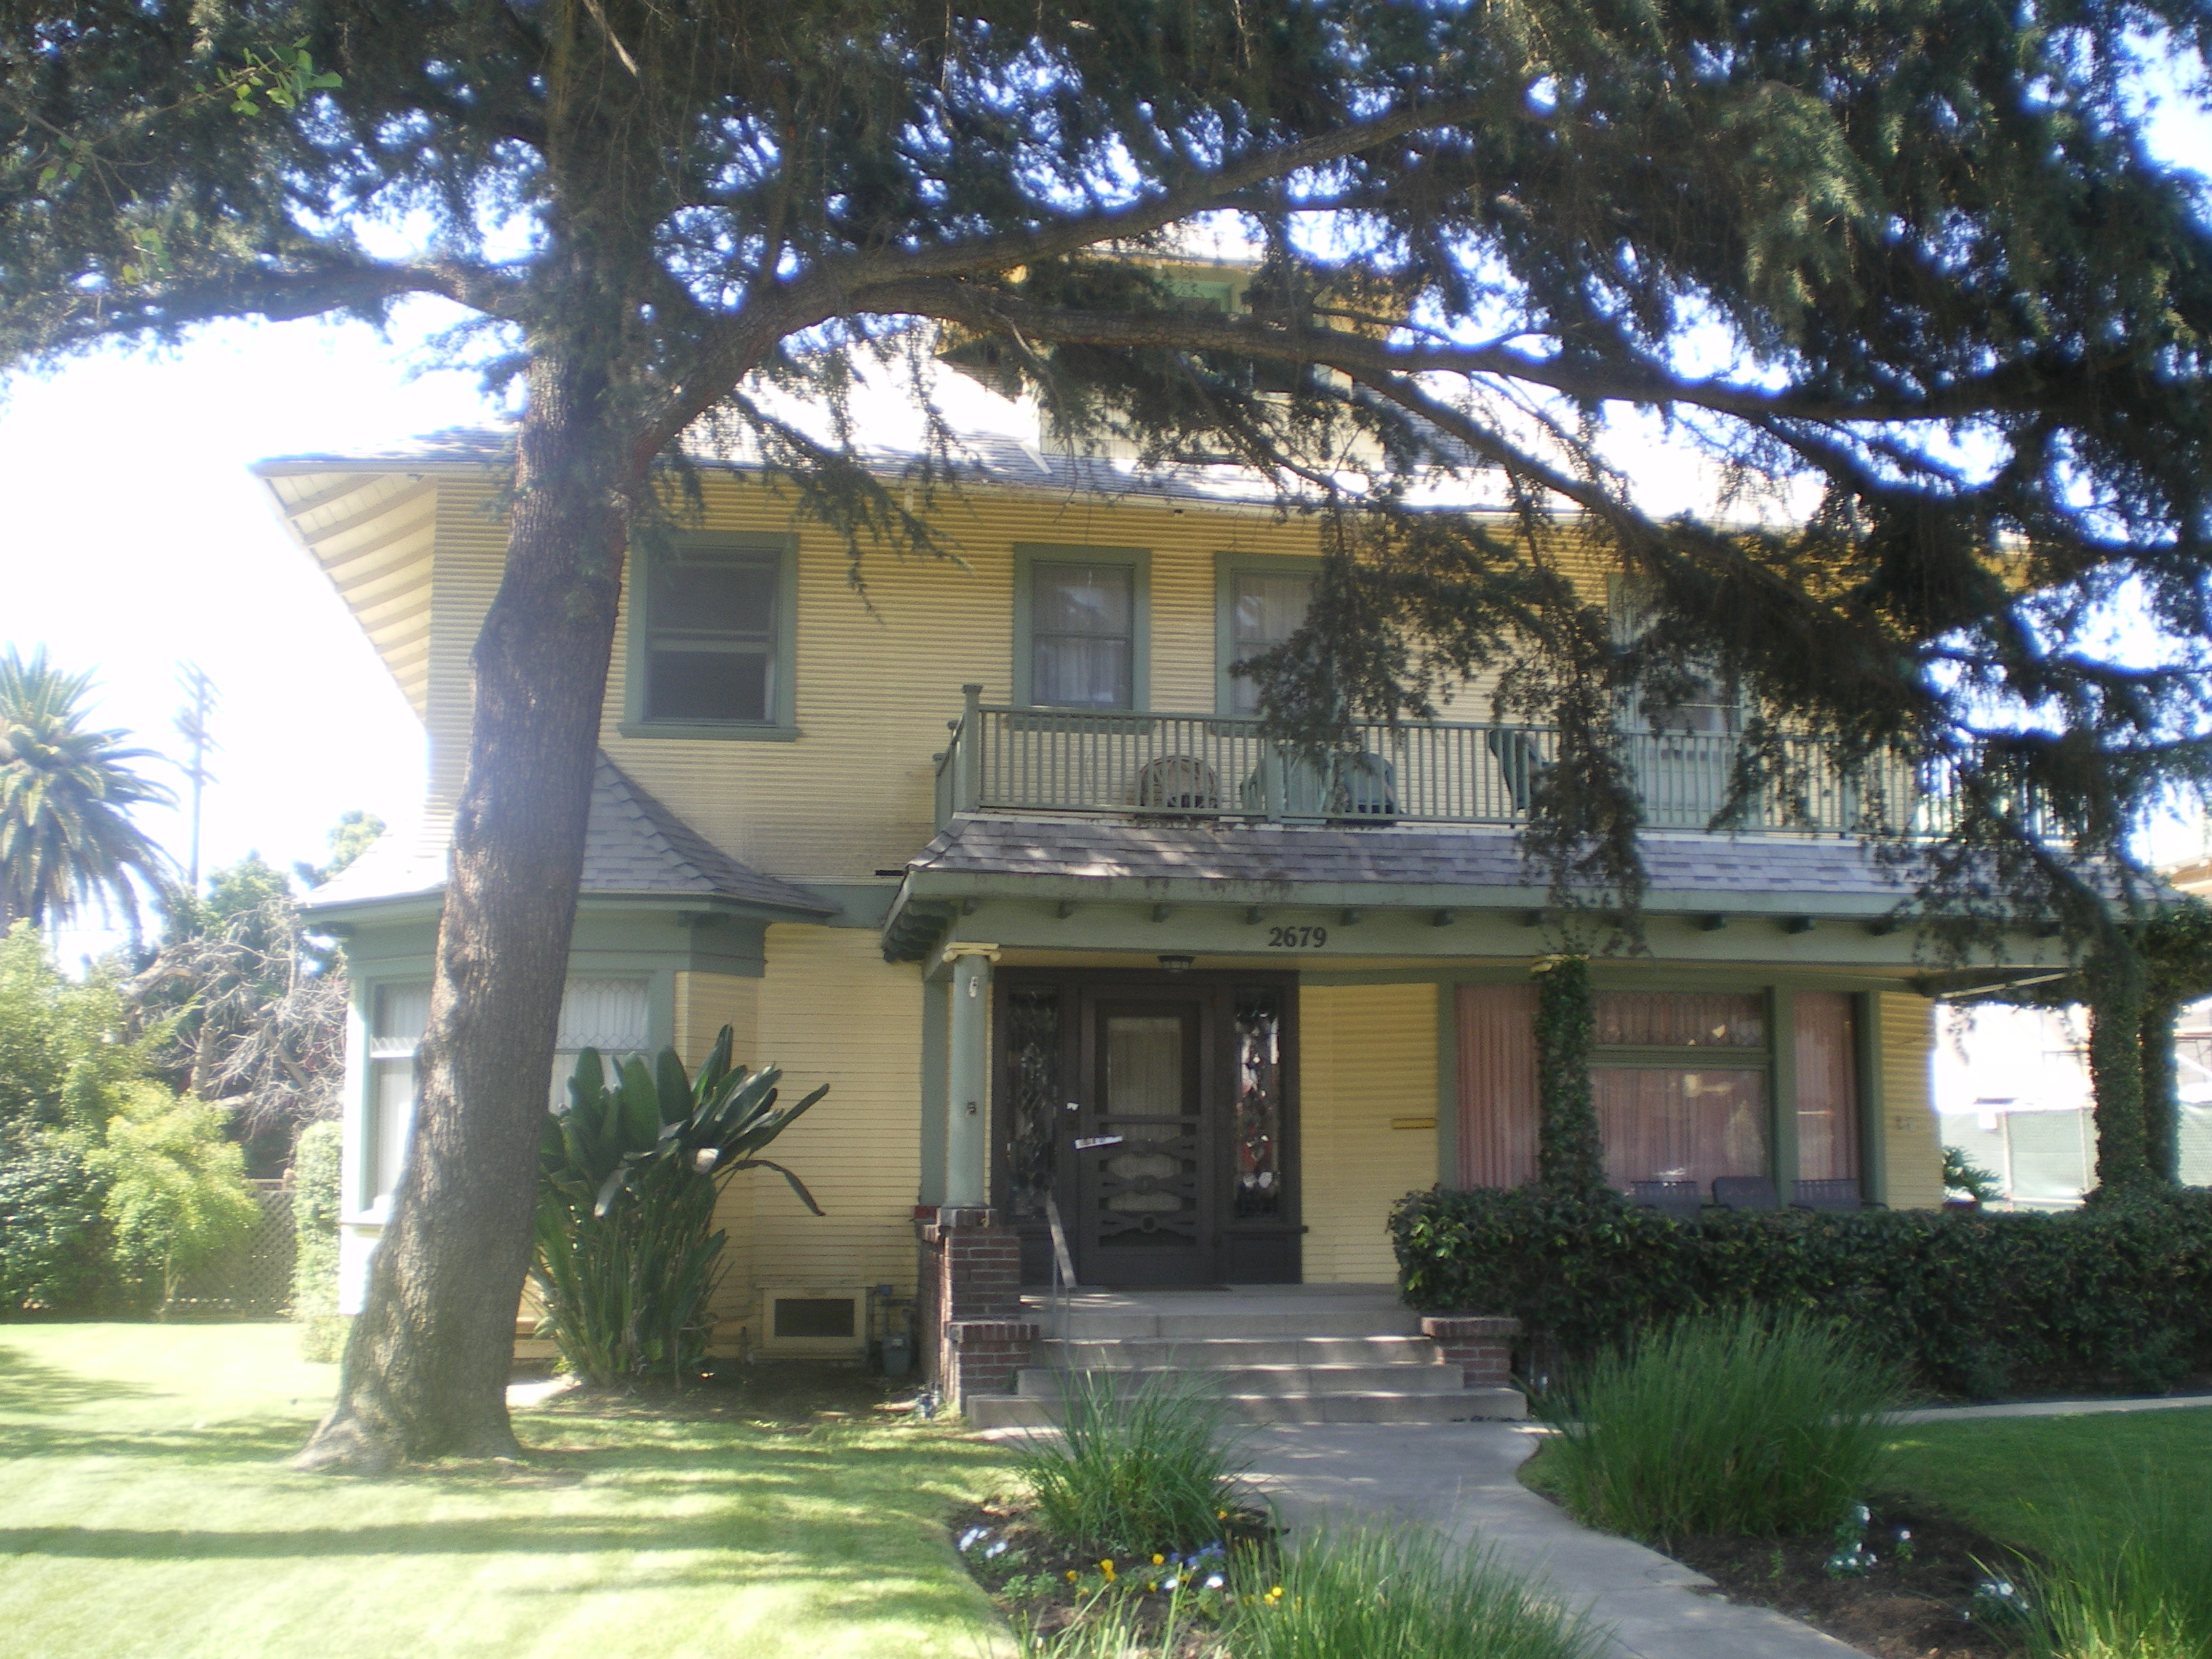 File:House at 2679 S. Menlo Ave., Los Angeles.jpg